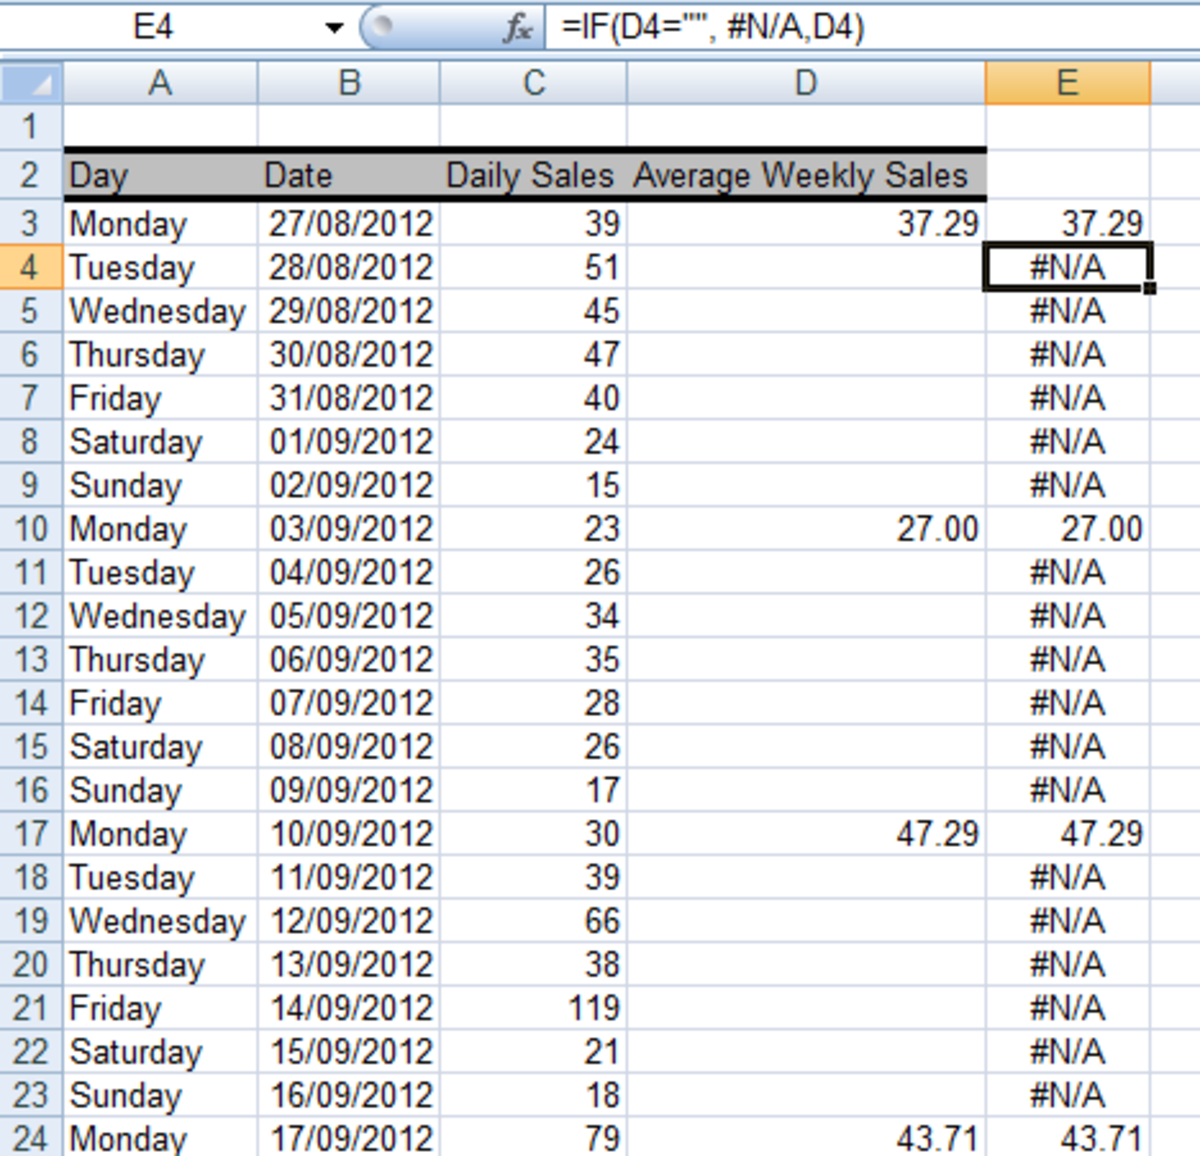 Ediblewildsus  Winning How To Get Excel  And  To Ignore Empty Cells In A Chart Or  With Lovely Using The If Function In A Formula To Convert Empty Cells To Na With Delectable Regression Using Excel Also Net Present Value Calculation Excel In Addition Microsoft Excel Pdf And Vb In Excel As Well As Combining Worksheets In Excel Additionally Excel Create A Report Table From Turbofuturecom With Ediblewildsus  Lovely How To Get Excel  And  To Ignore Empty Cells In A Chart Or  With Delectable Using The If Function In A Formula To Convert Empty Cells To Na And Winning Regression Using Excel Also Net Present Value Calculation Excel In Addition Microsoft Excel Pdf From Turbofuturecom